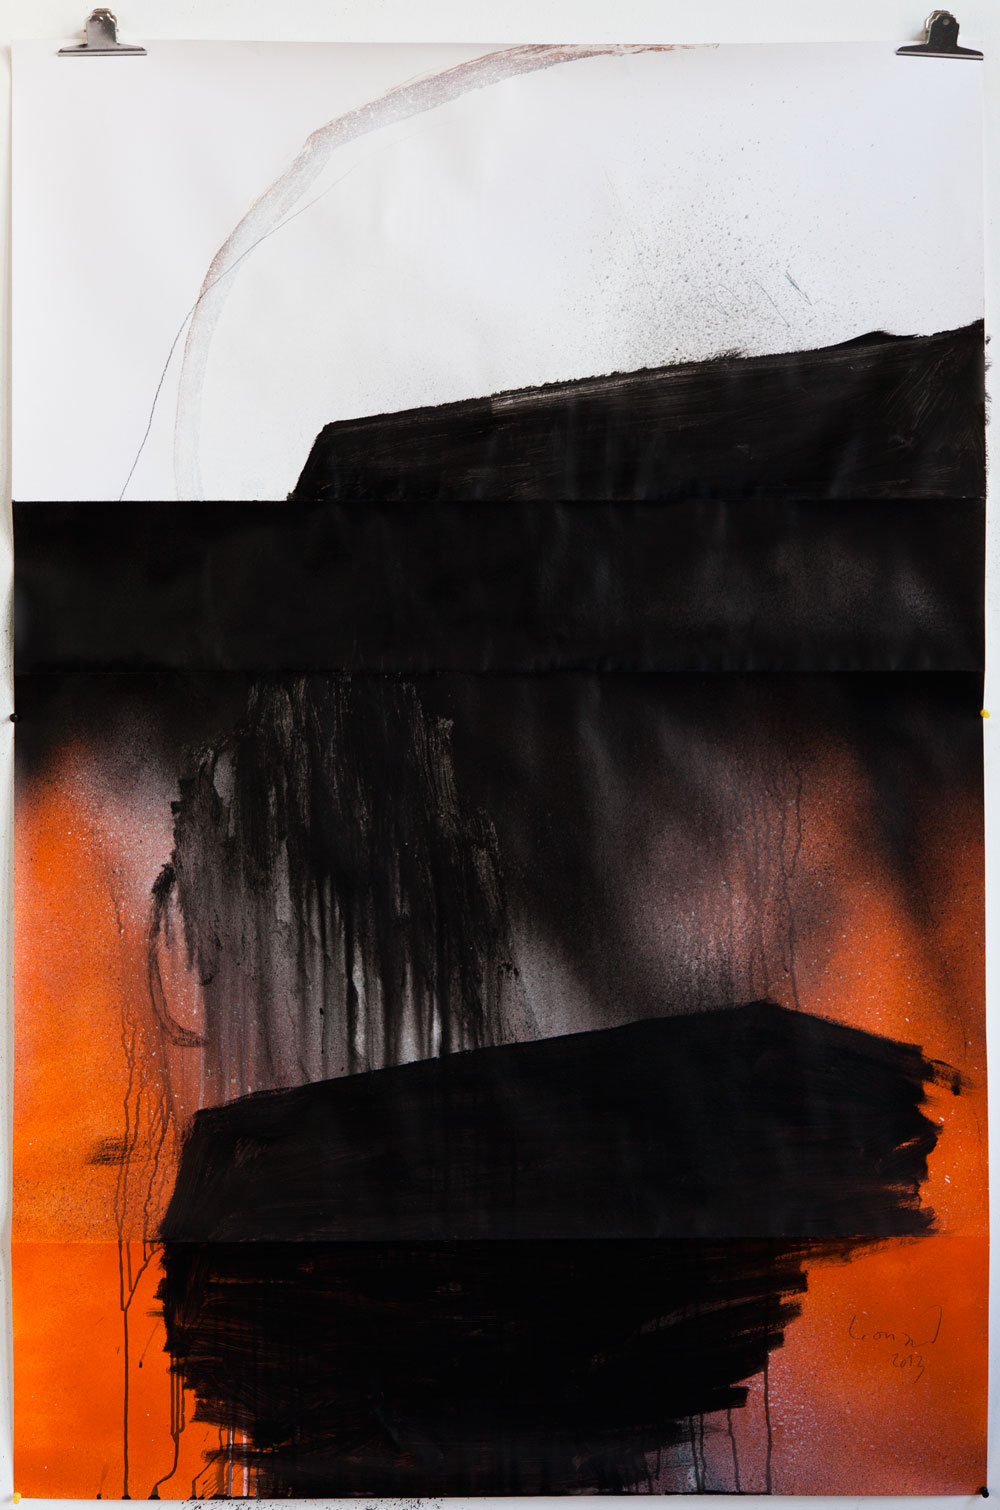 Stephane Leonard / ot / lacquer and pencil on paper / 110 x 166 cm / 2013